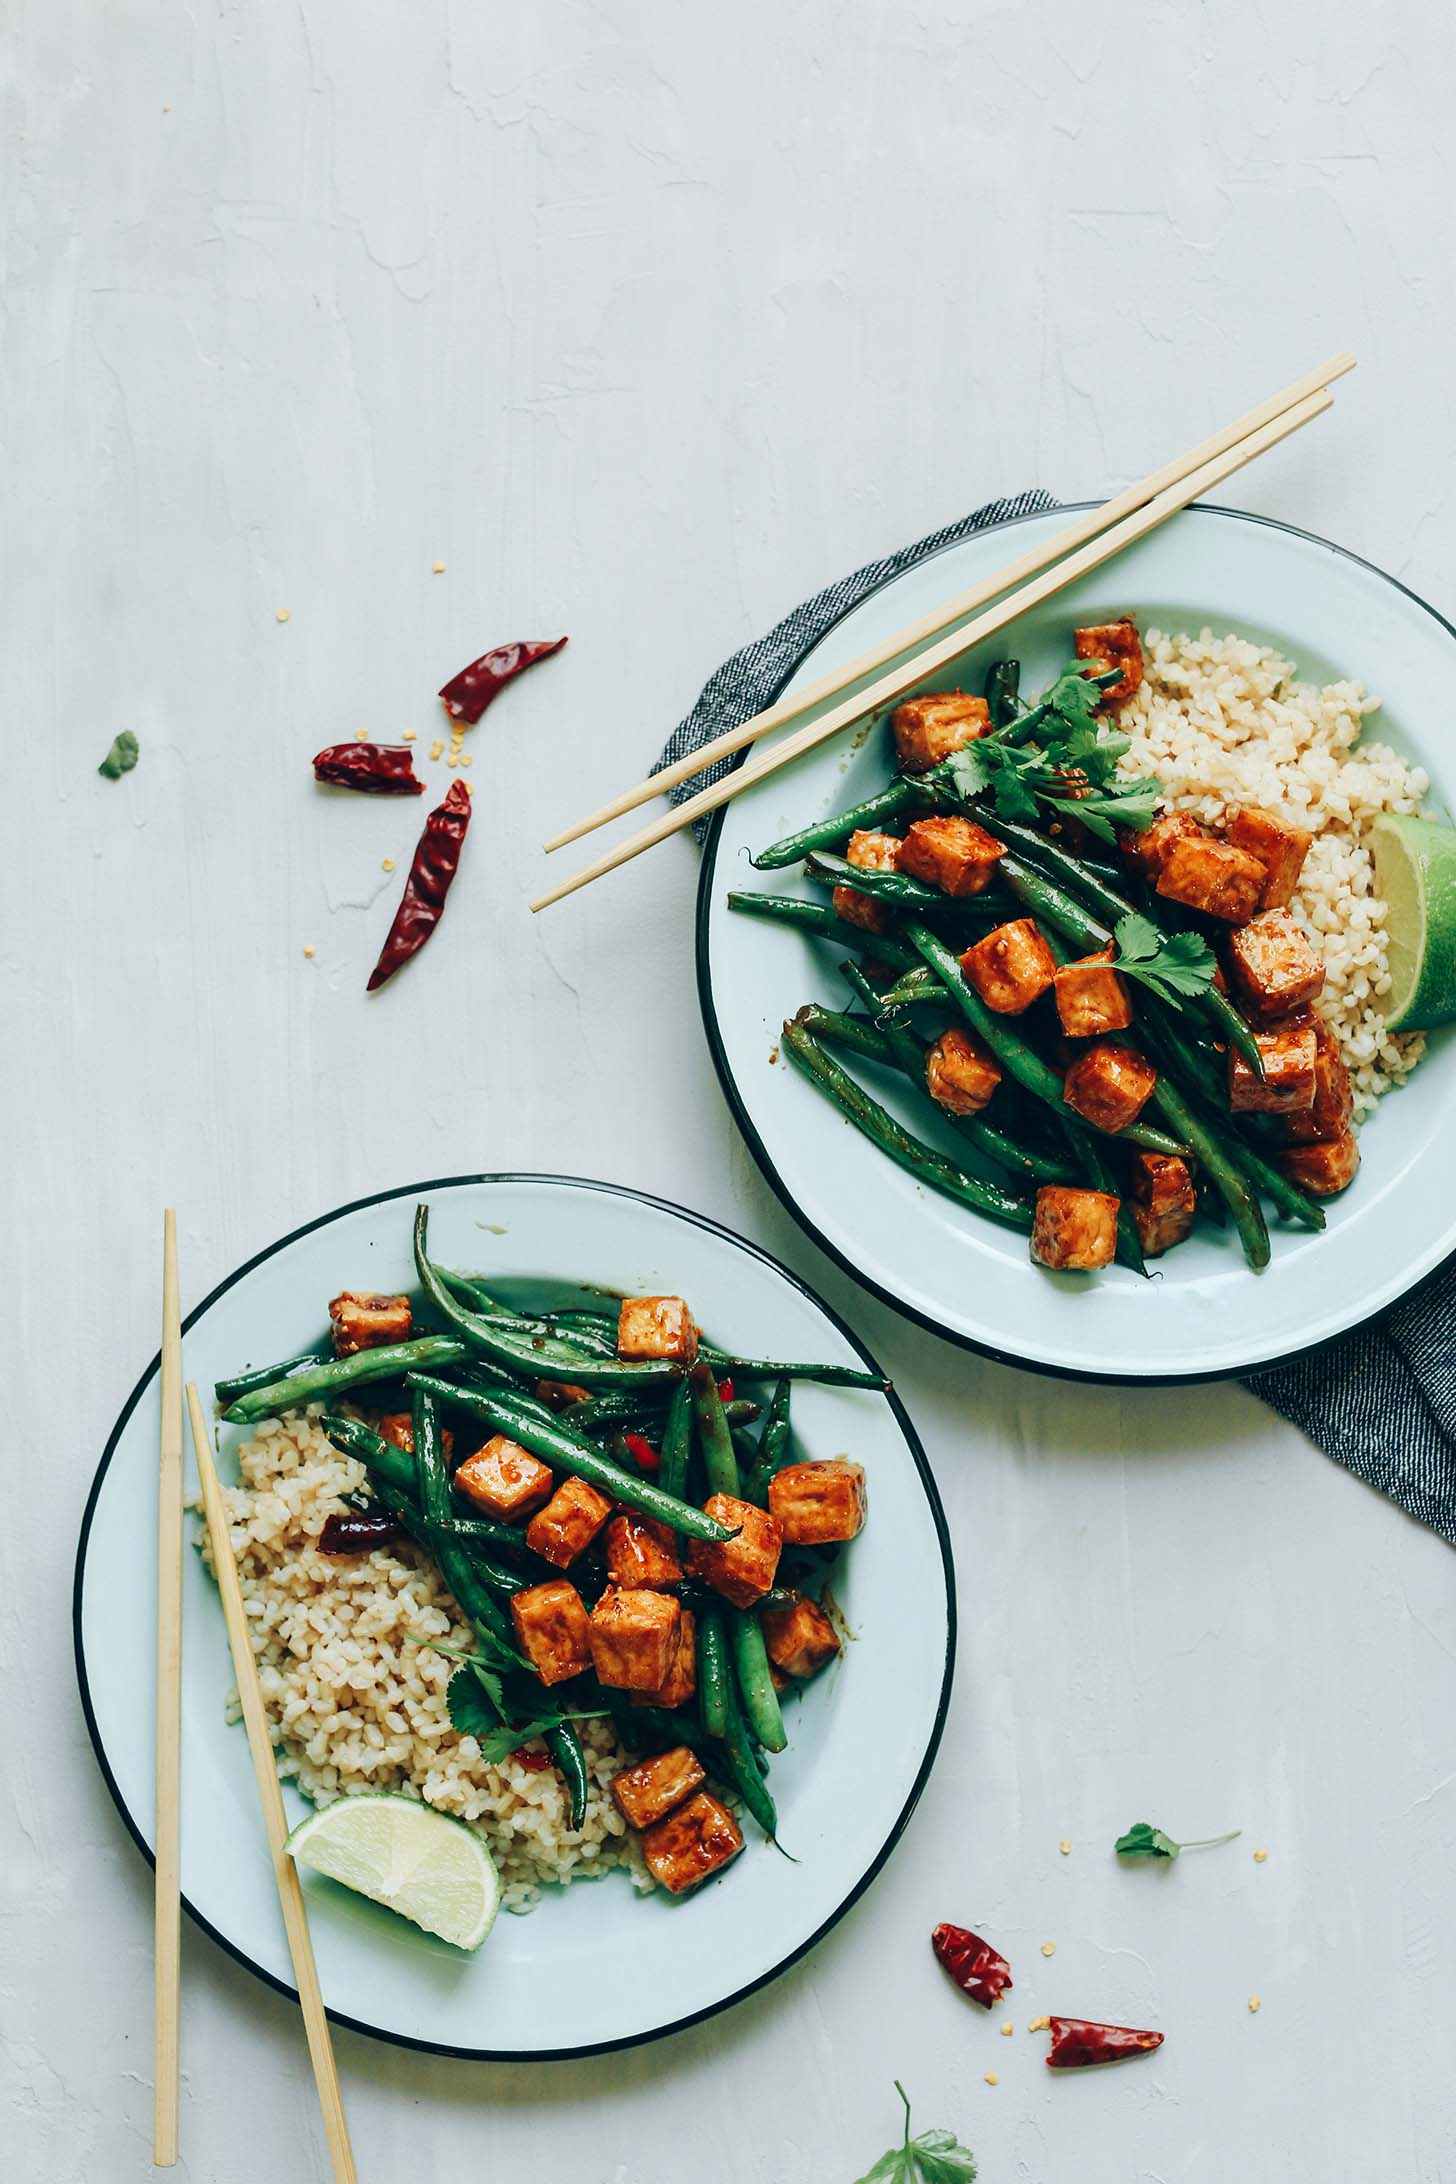 Two bowls of Almond Butter Tofu Stir-Fry with rice for a gluten-free vegan meal